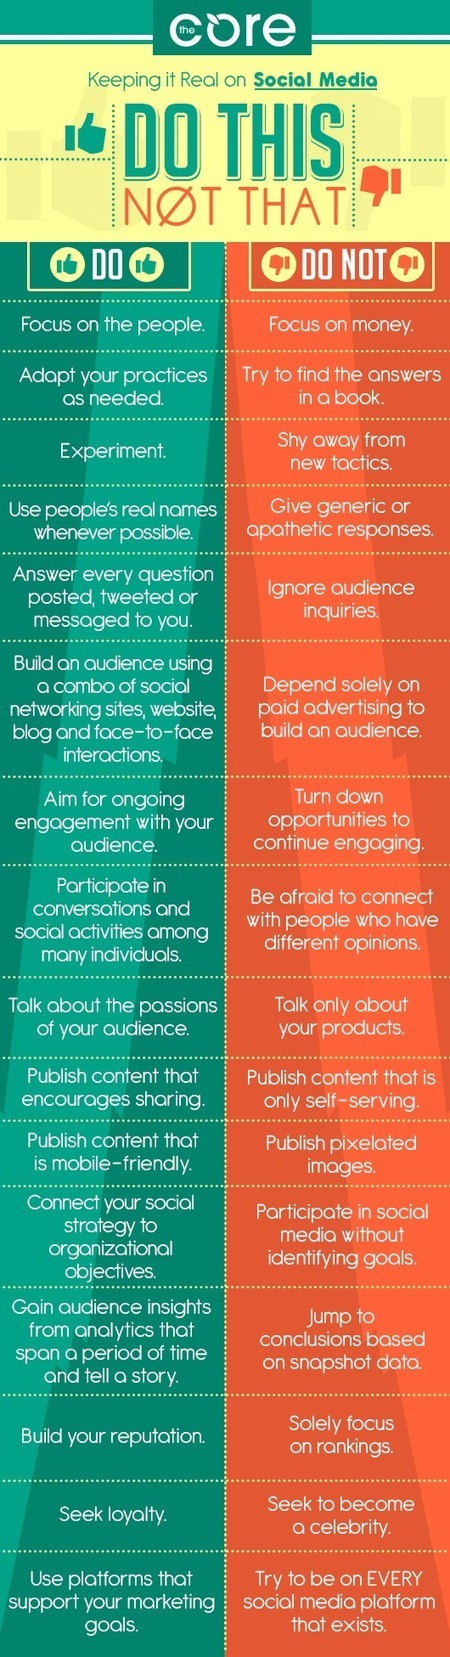 32 Do's and Don'ts for an Awesome Social Media Marketing Strategy | Effective Inbound marketing practices | Scoop.it